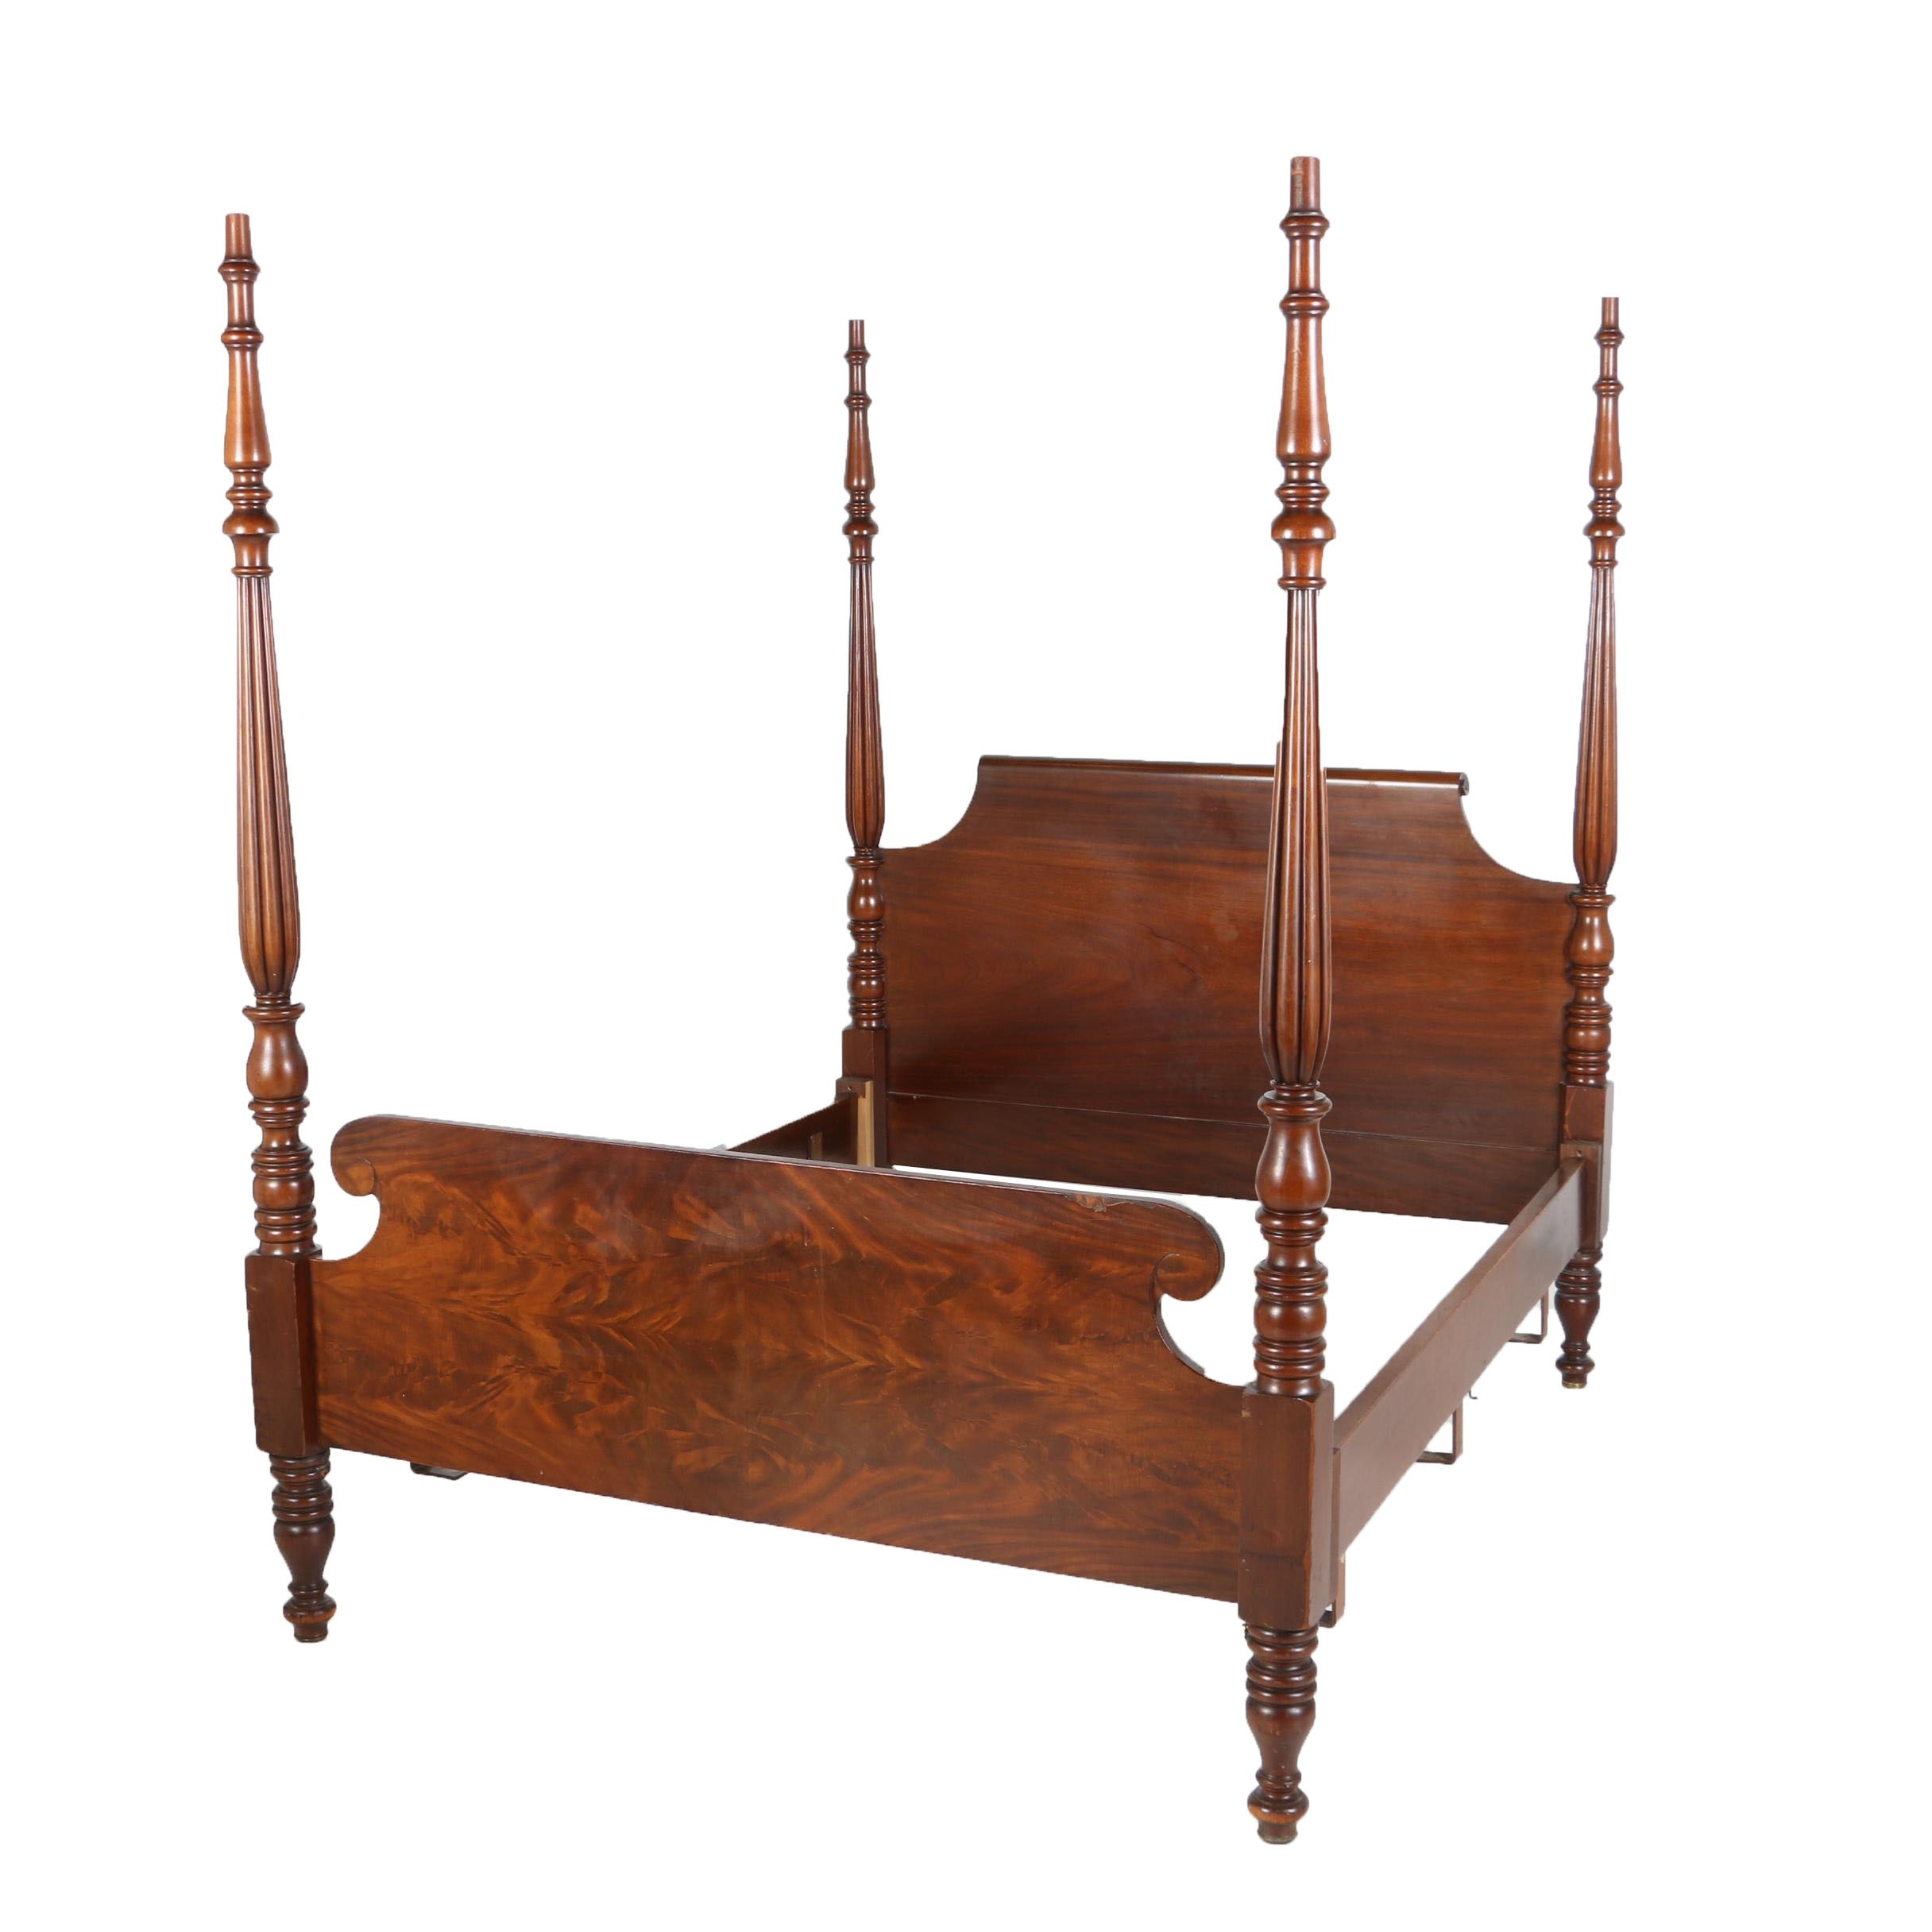 George III Style Mahogany Four-Post Queen Size Bed Frame, 20th Century